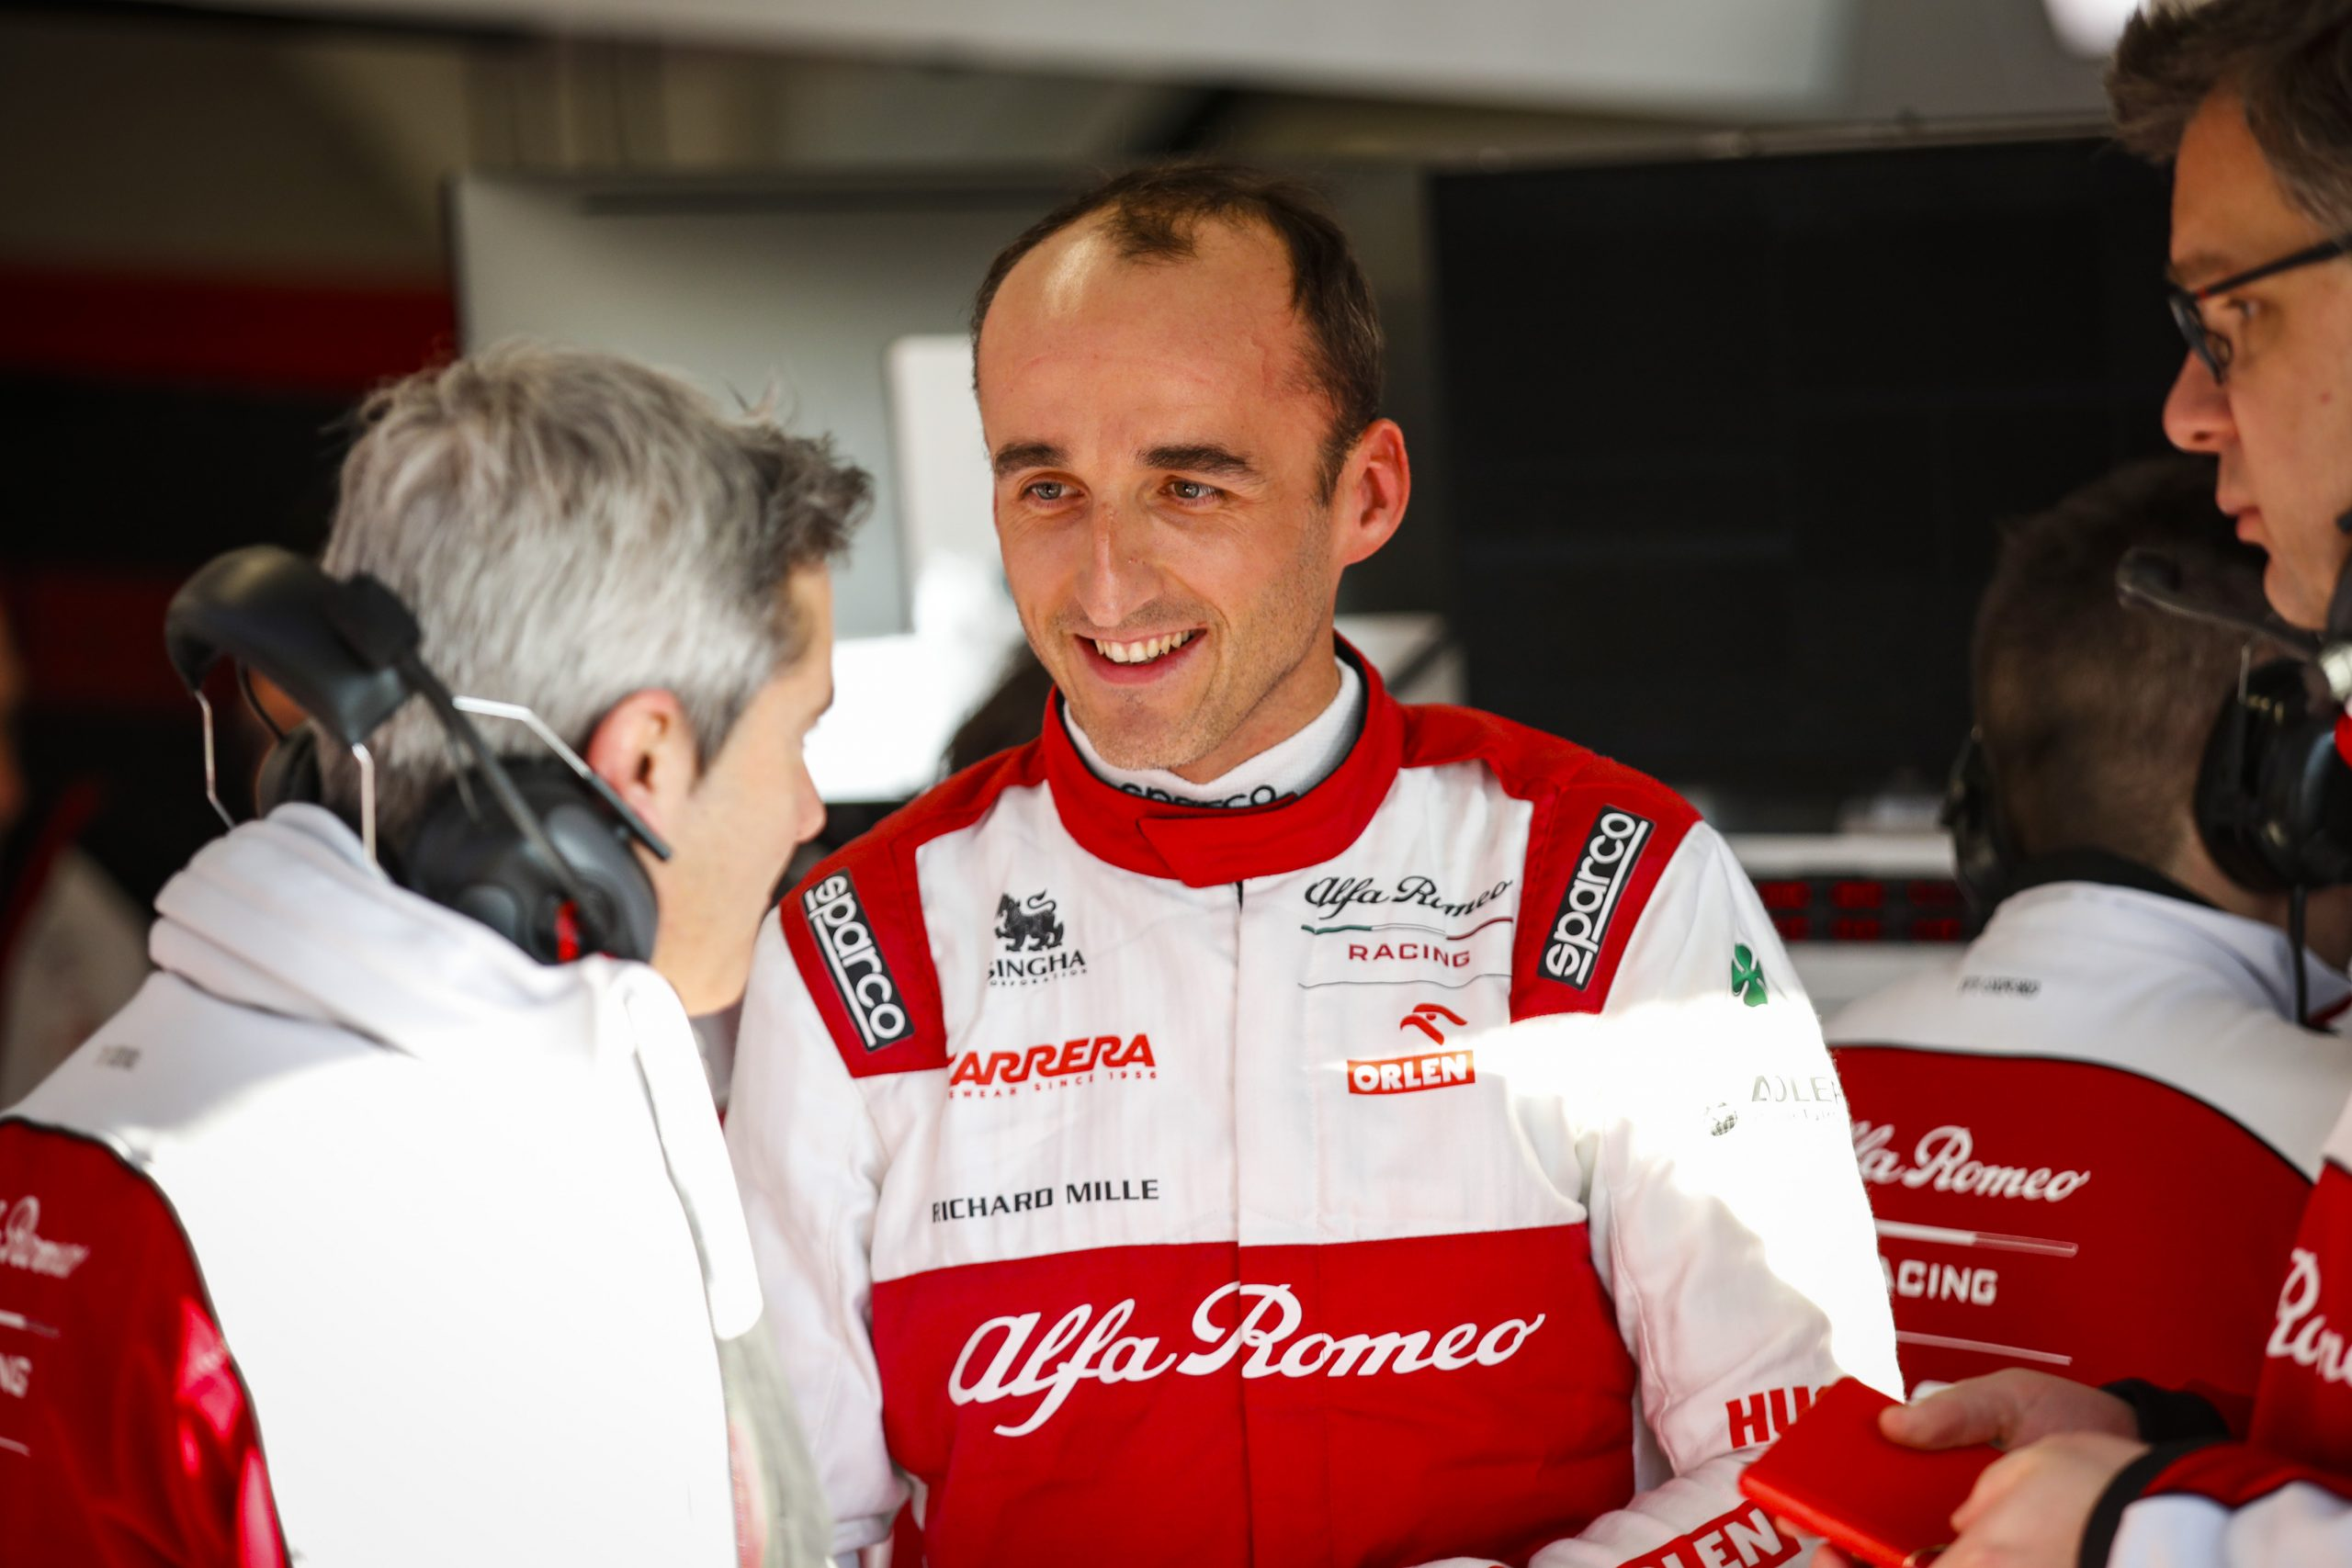 Kubica turned down world rally offer